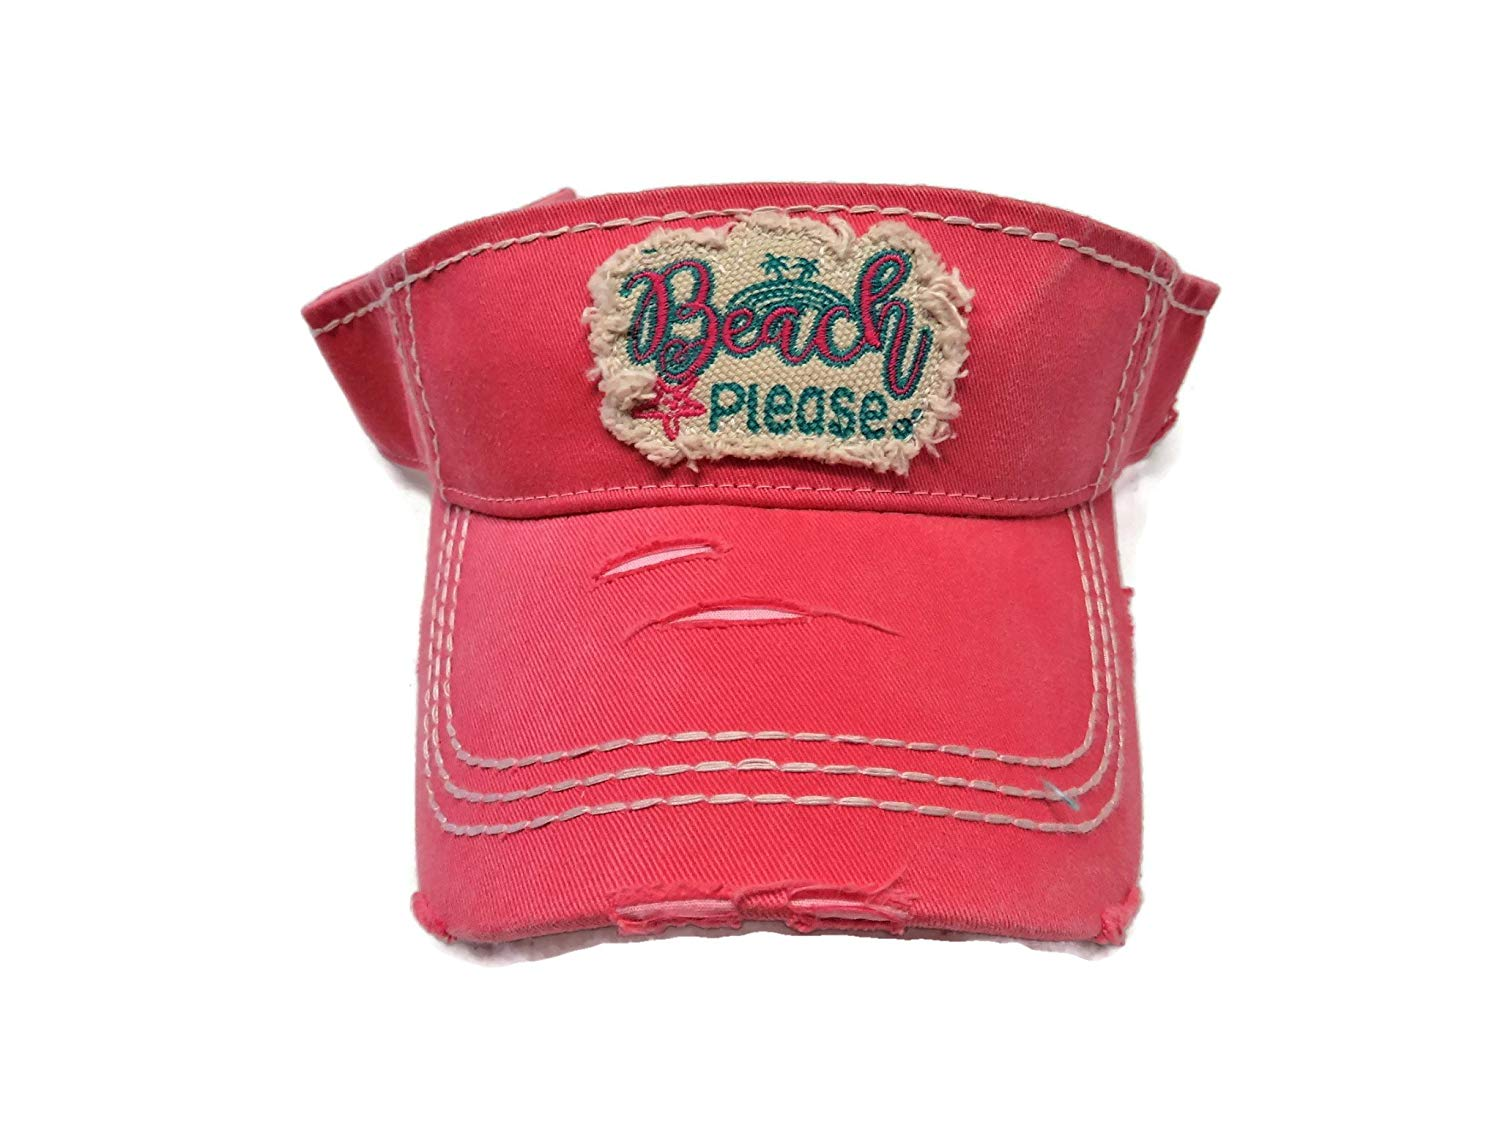 0009827f8f6 Get Quotations · Spirit Caps Embroidered Beach Please Frayed Patch Washed  Coral Pink Cotton Visor